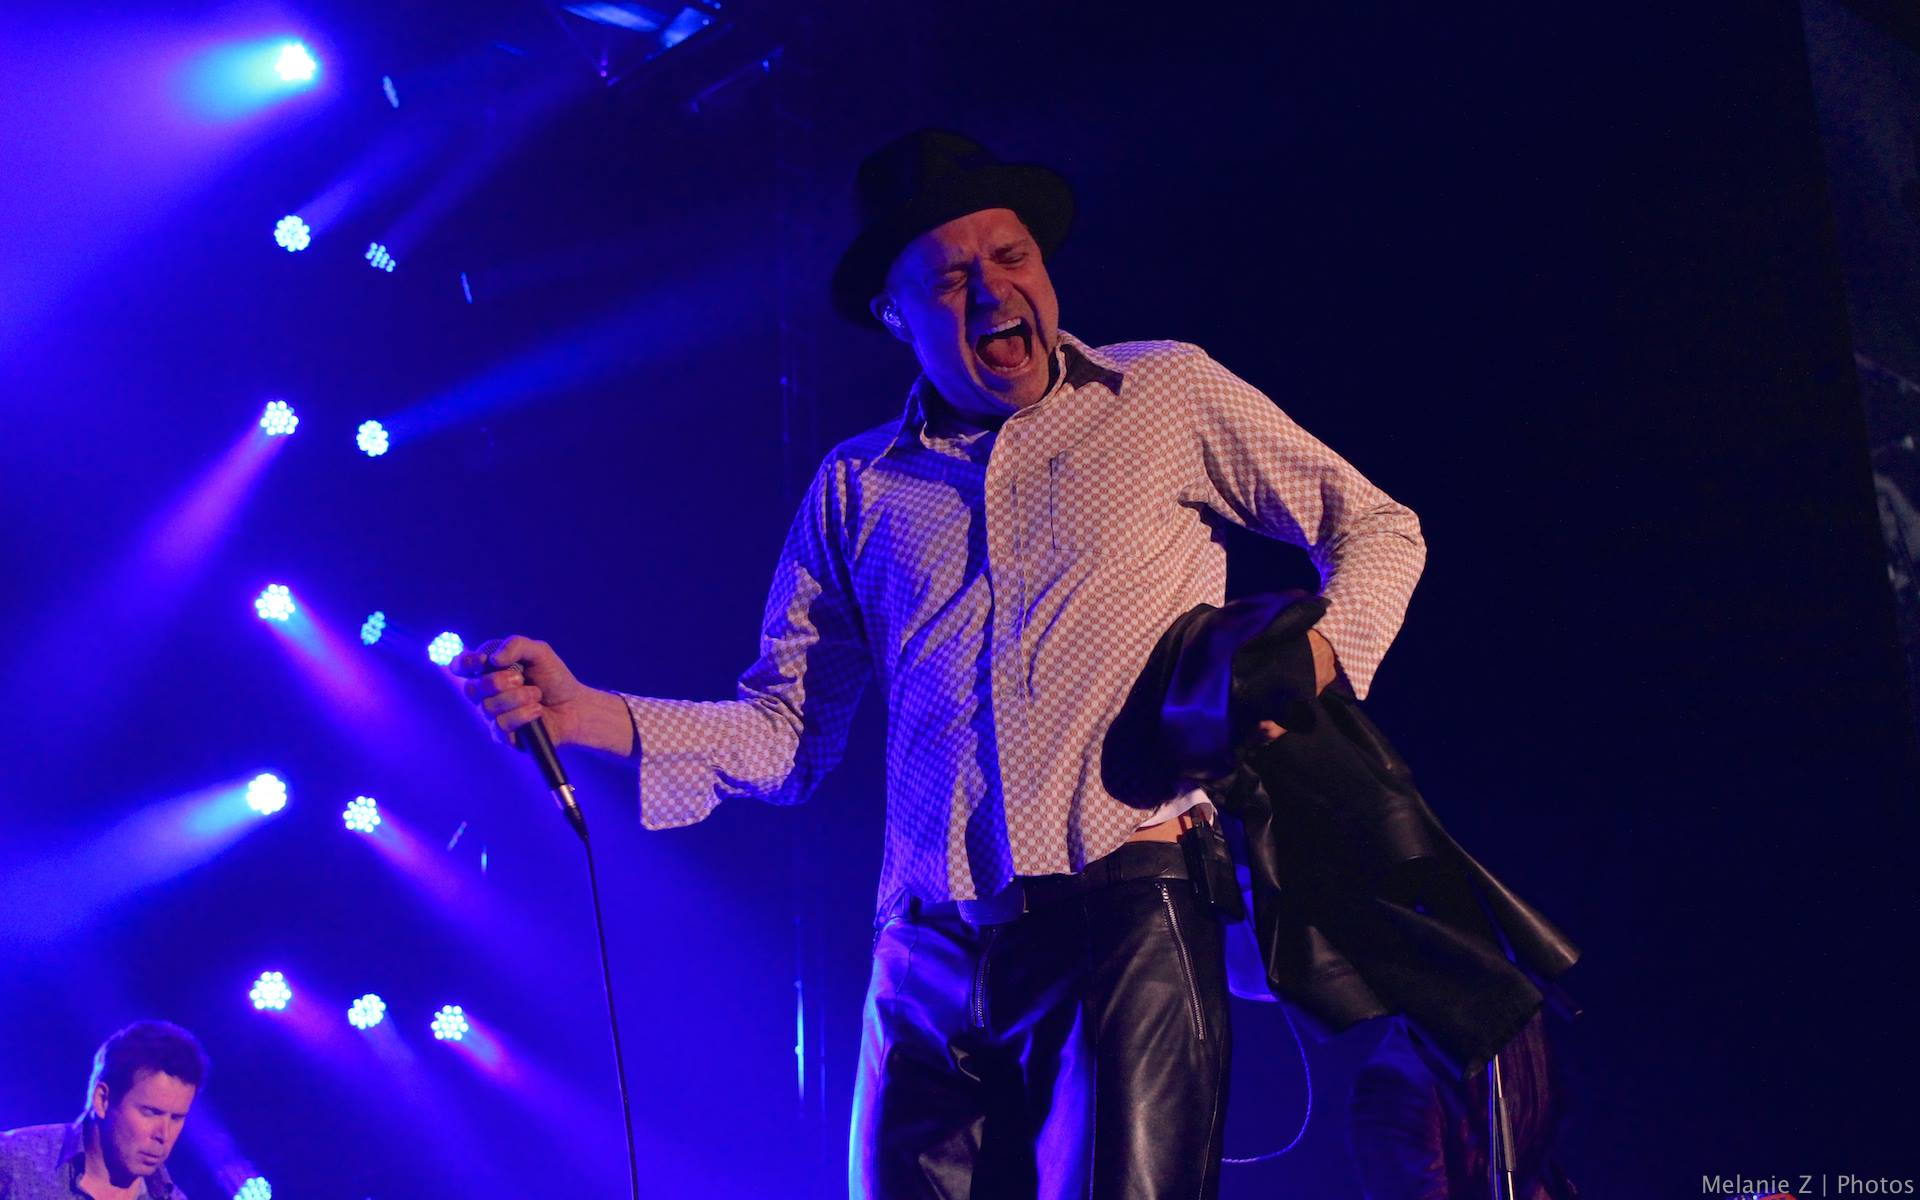 Gord Downie on stage with Tragically Hip during Fully Completely 2015 Annivesary Tour (Mel Z / Rogers)